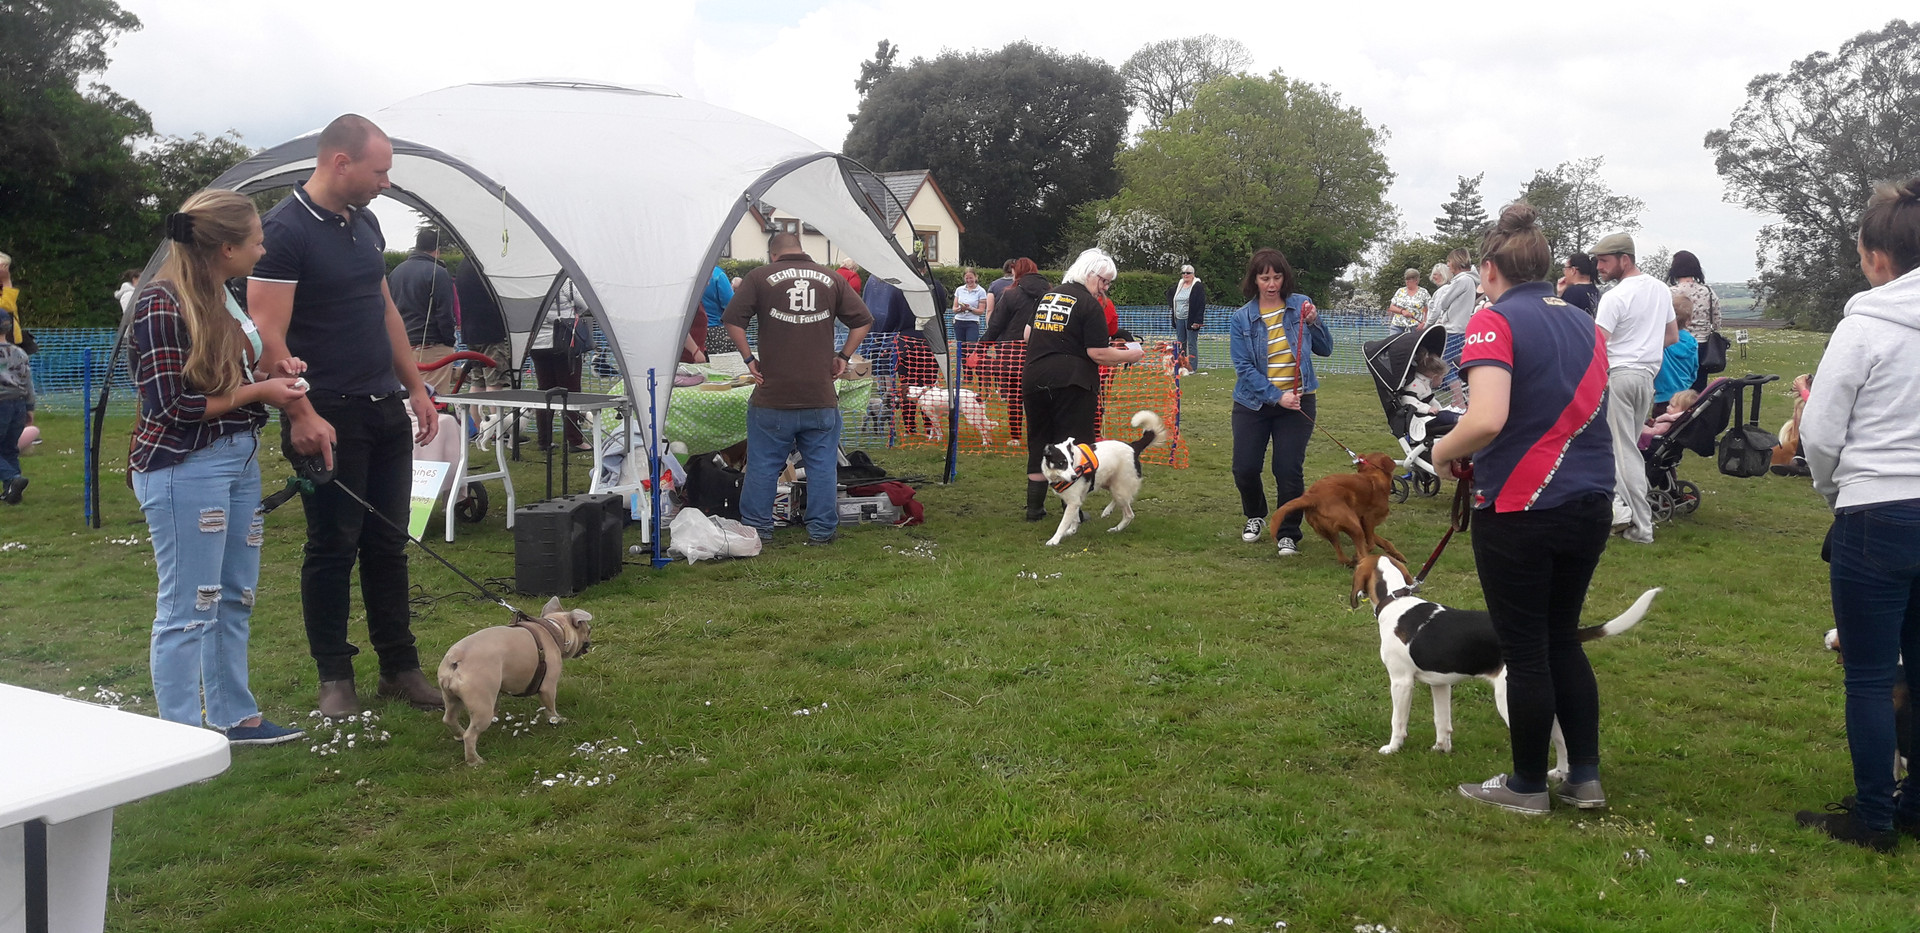 People turning up for the dog show